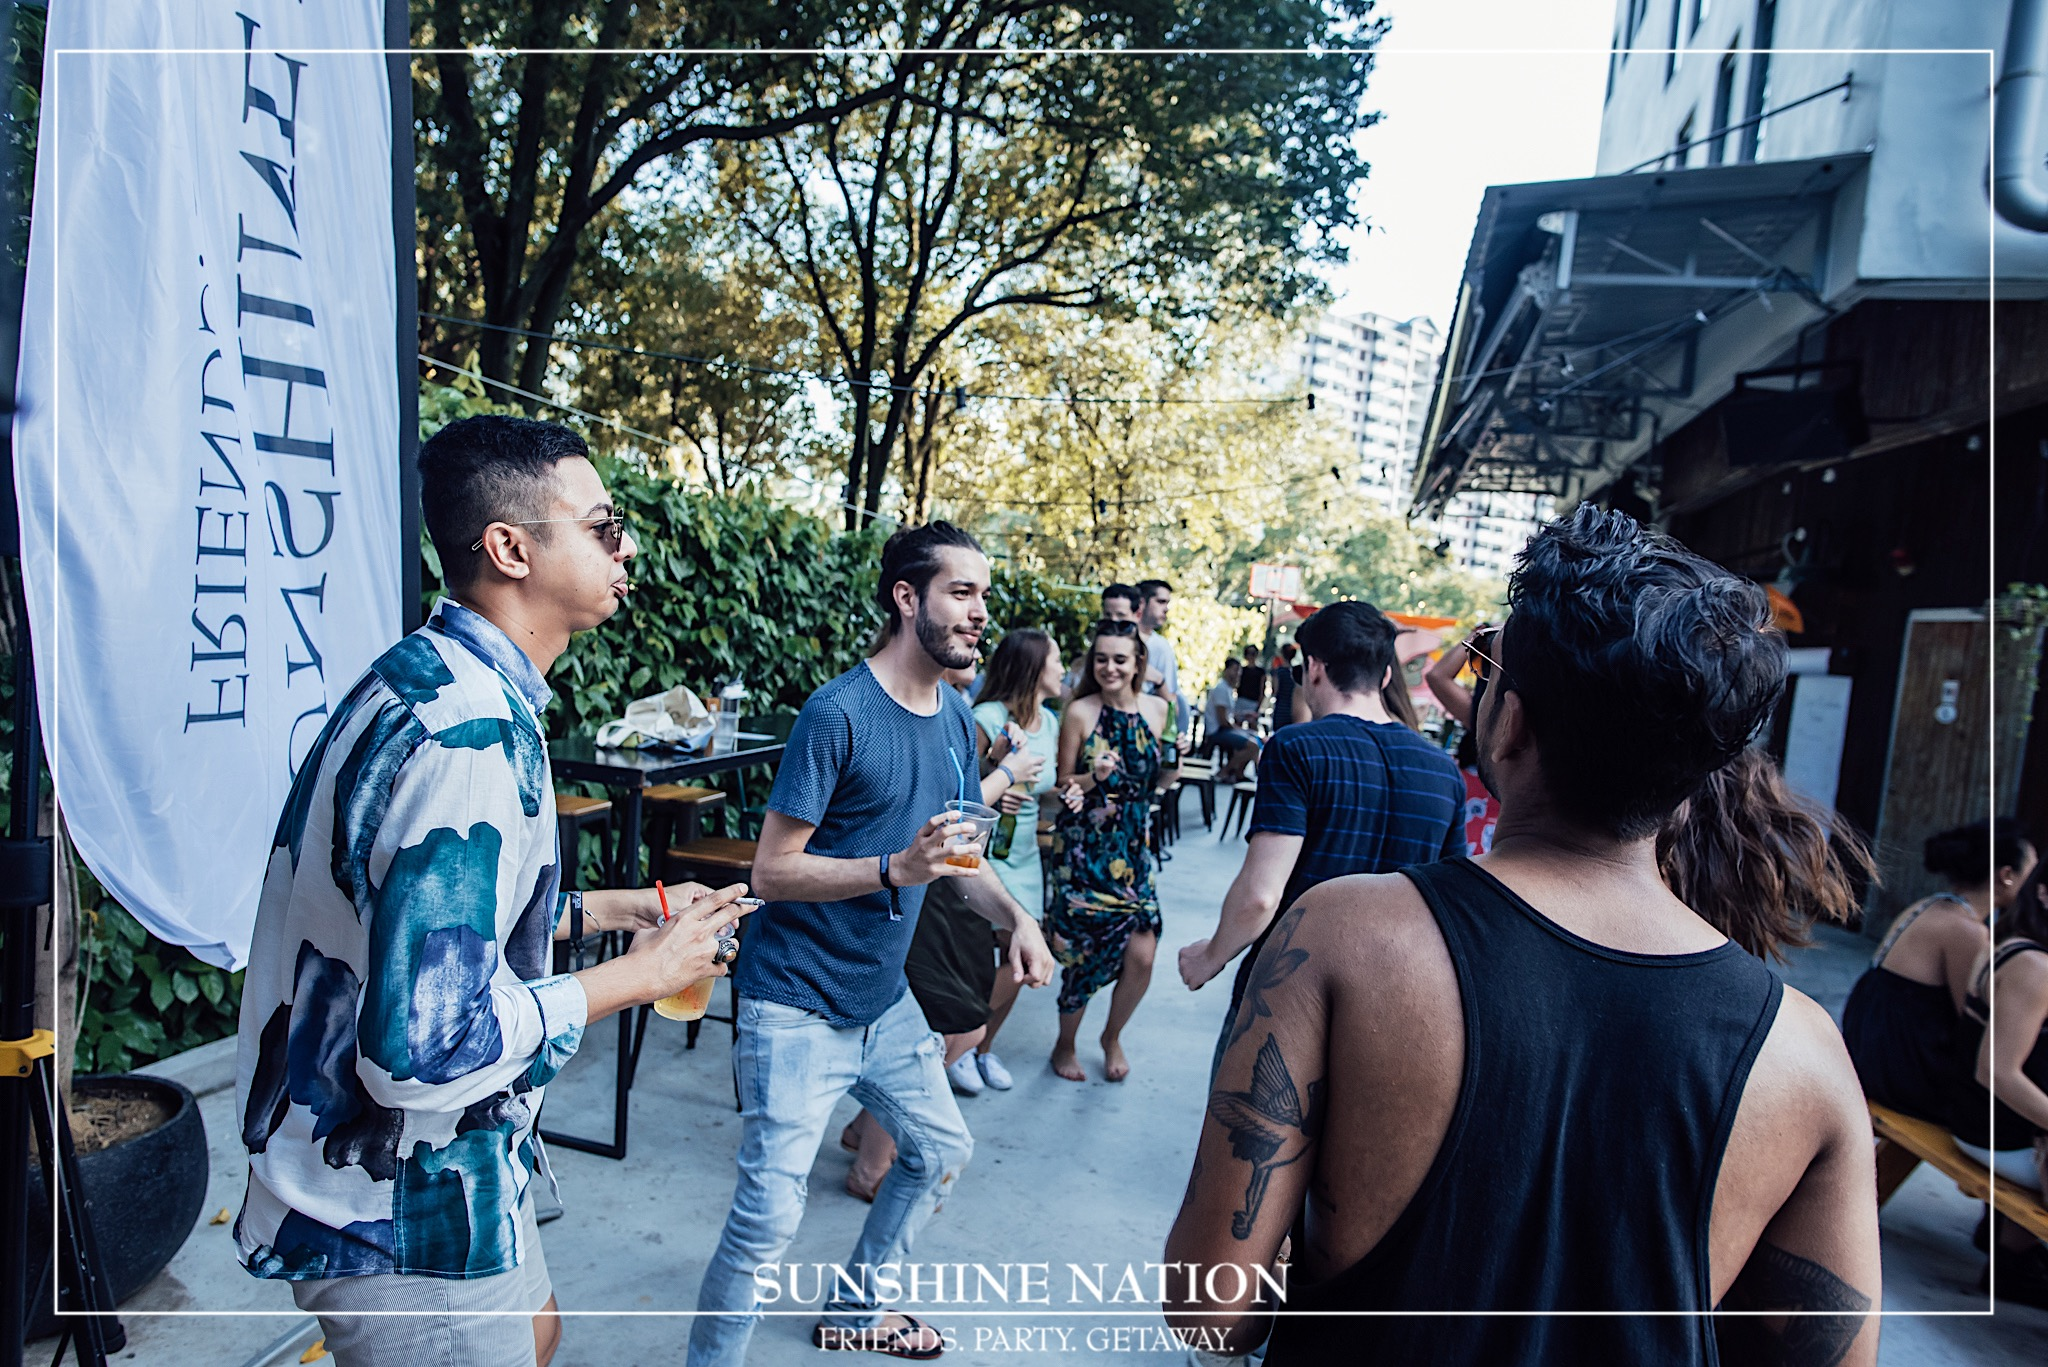 18092016_SunshineNation_Colossal119_Watermarked.jpg